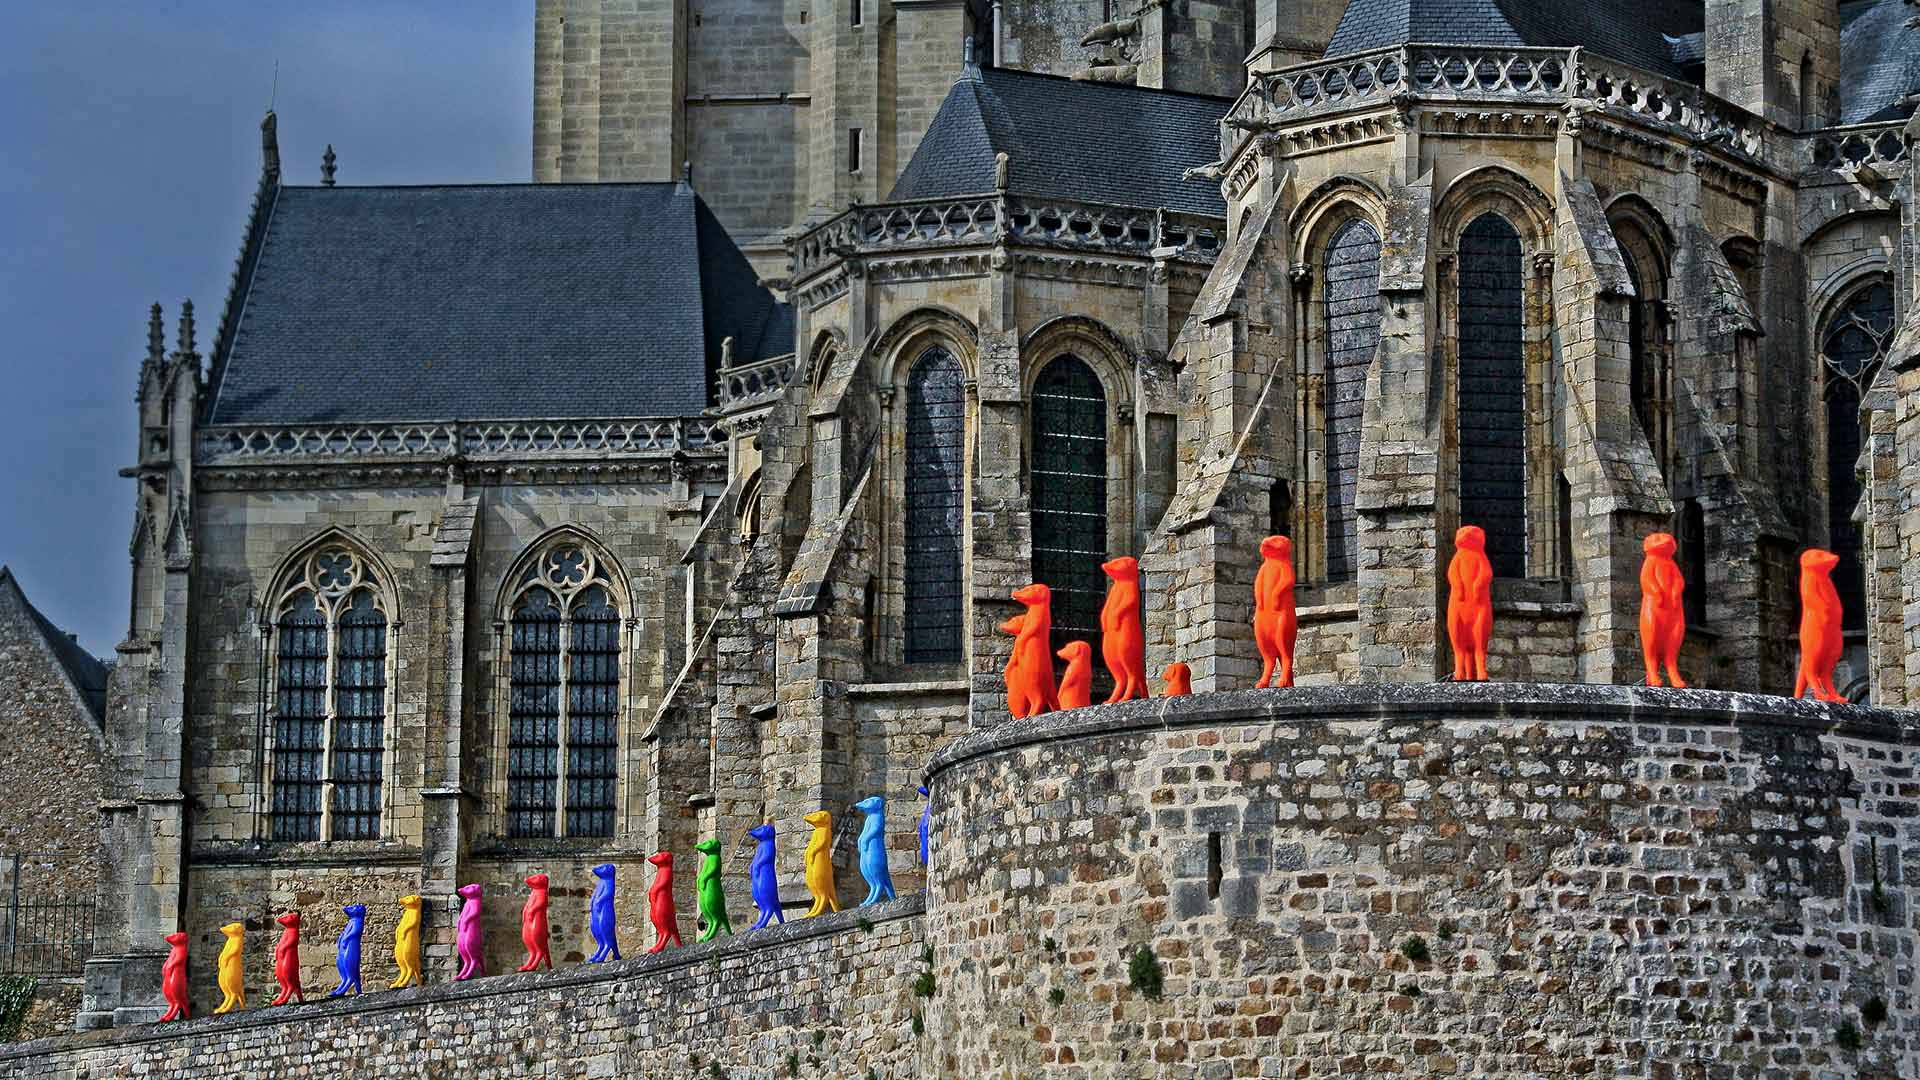 Cracking Art installation at Le Mans Cathedral in 2015, France (© Michel GILE/Gamma-Rapho via Getty Images)(Bing United States)